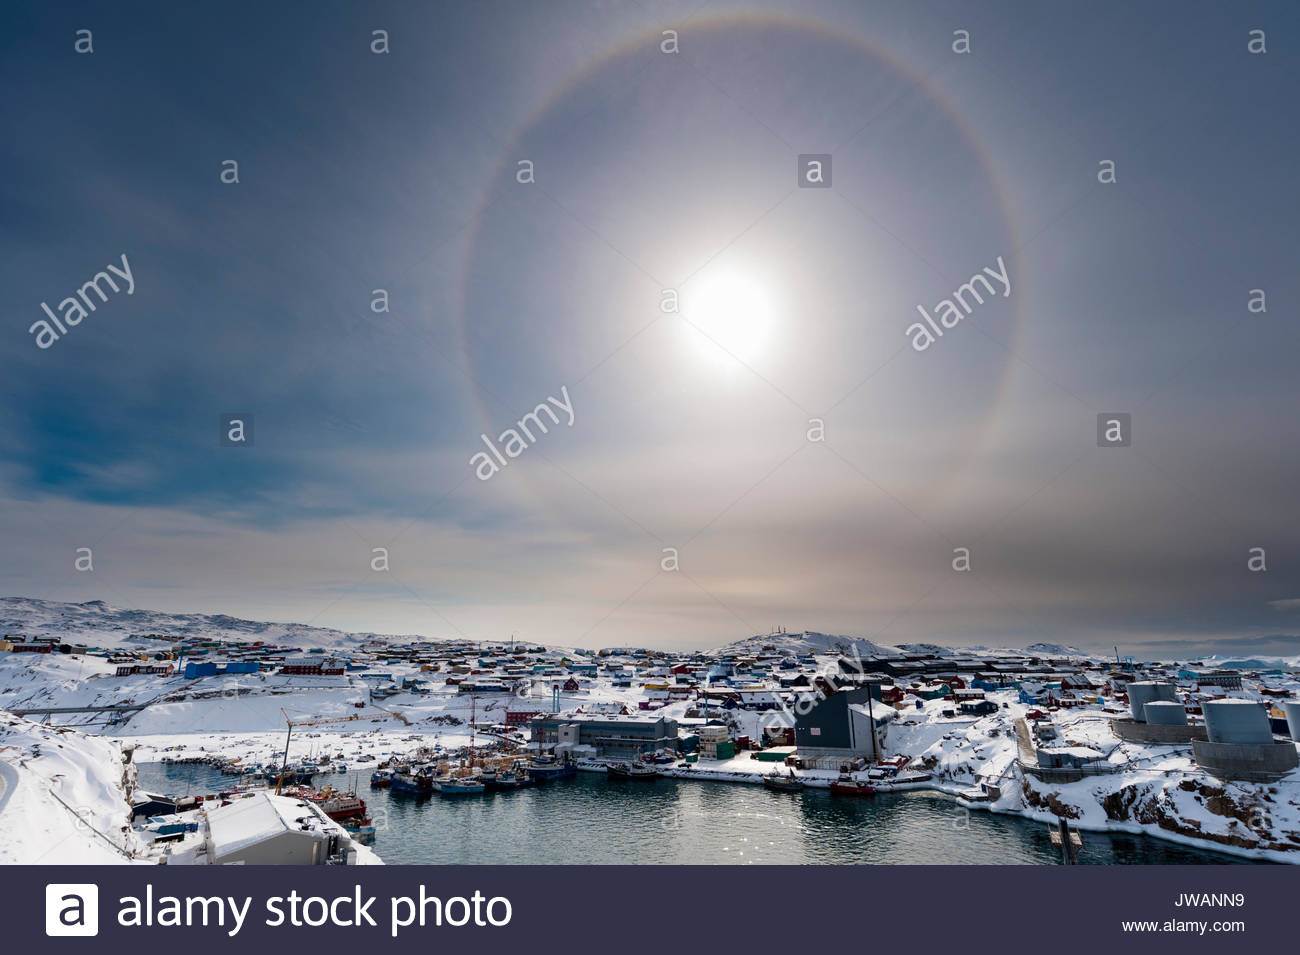 A solar halo,an phenomenon caused by light interacting with ice crystals in the atmosphere. - Stock Image